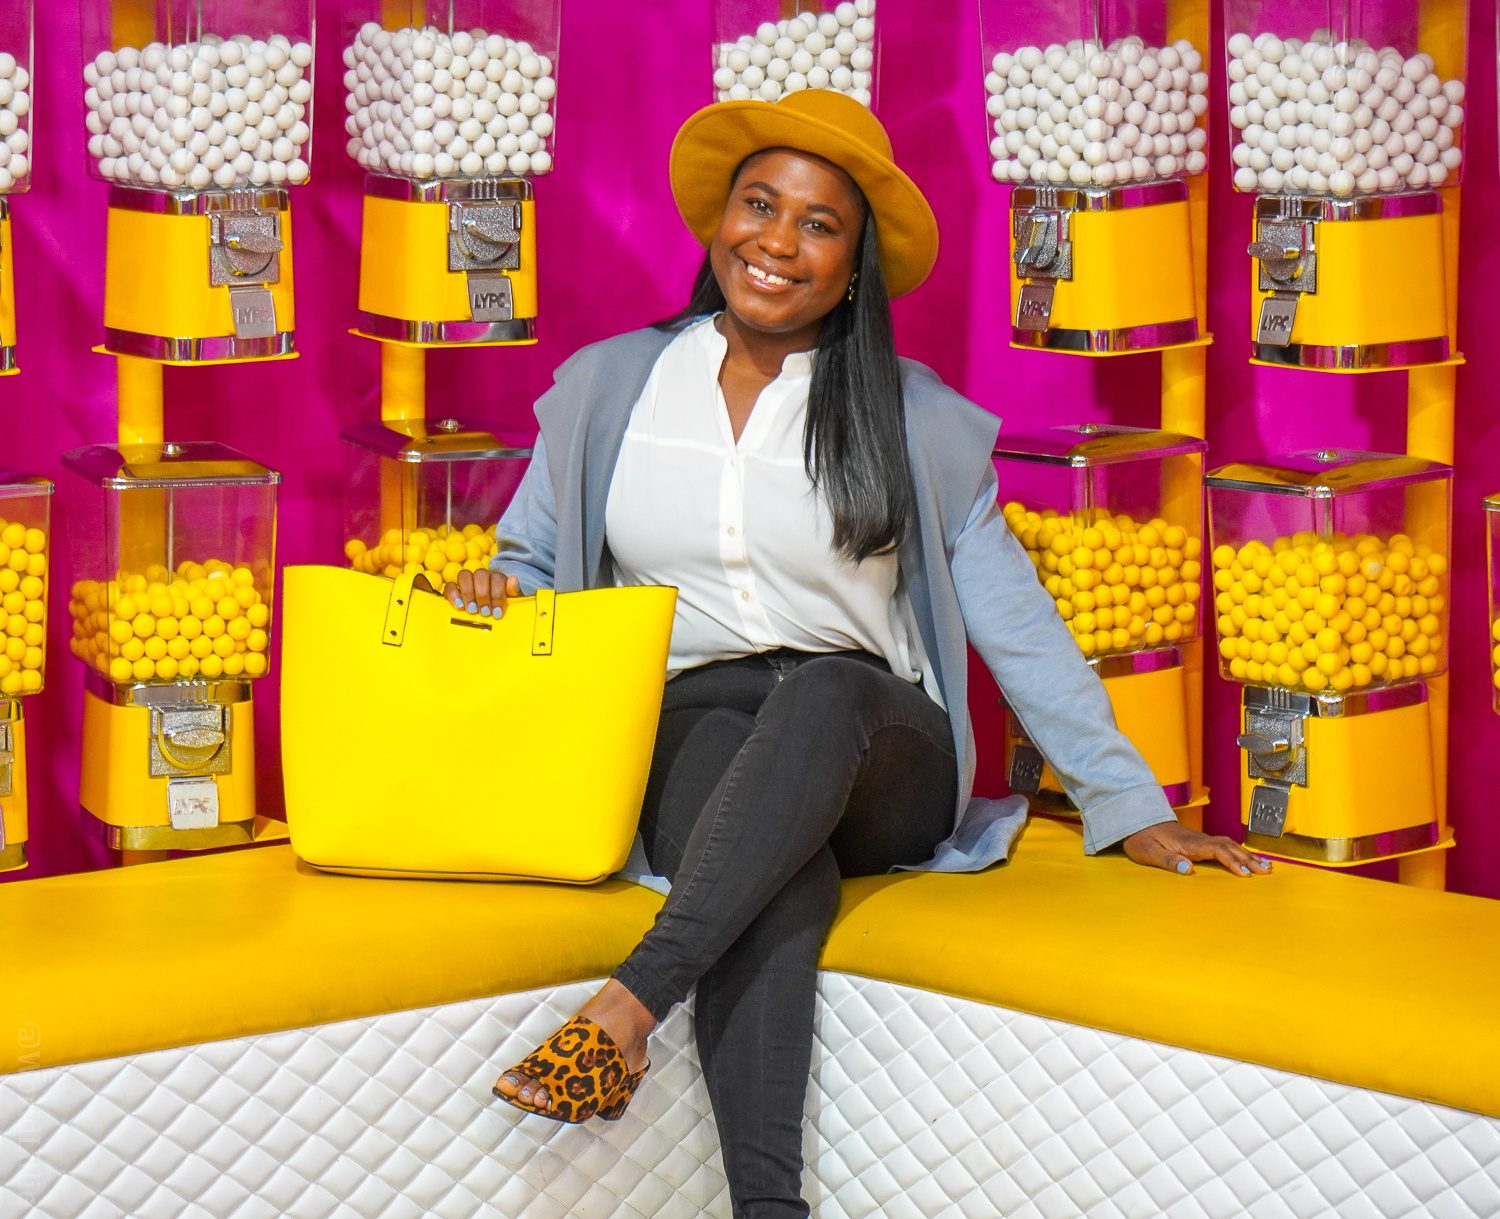 Influencer synonym question, and a color pop of delight in the Happy Place candy room!